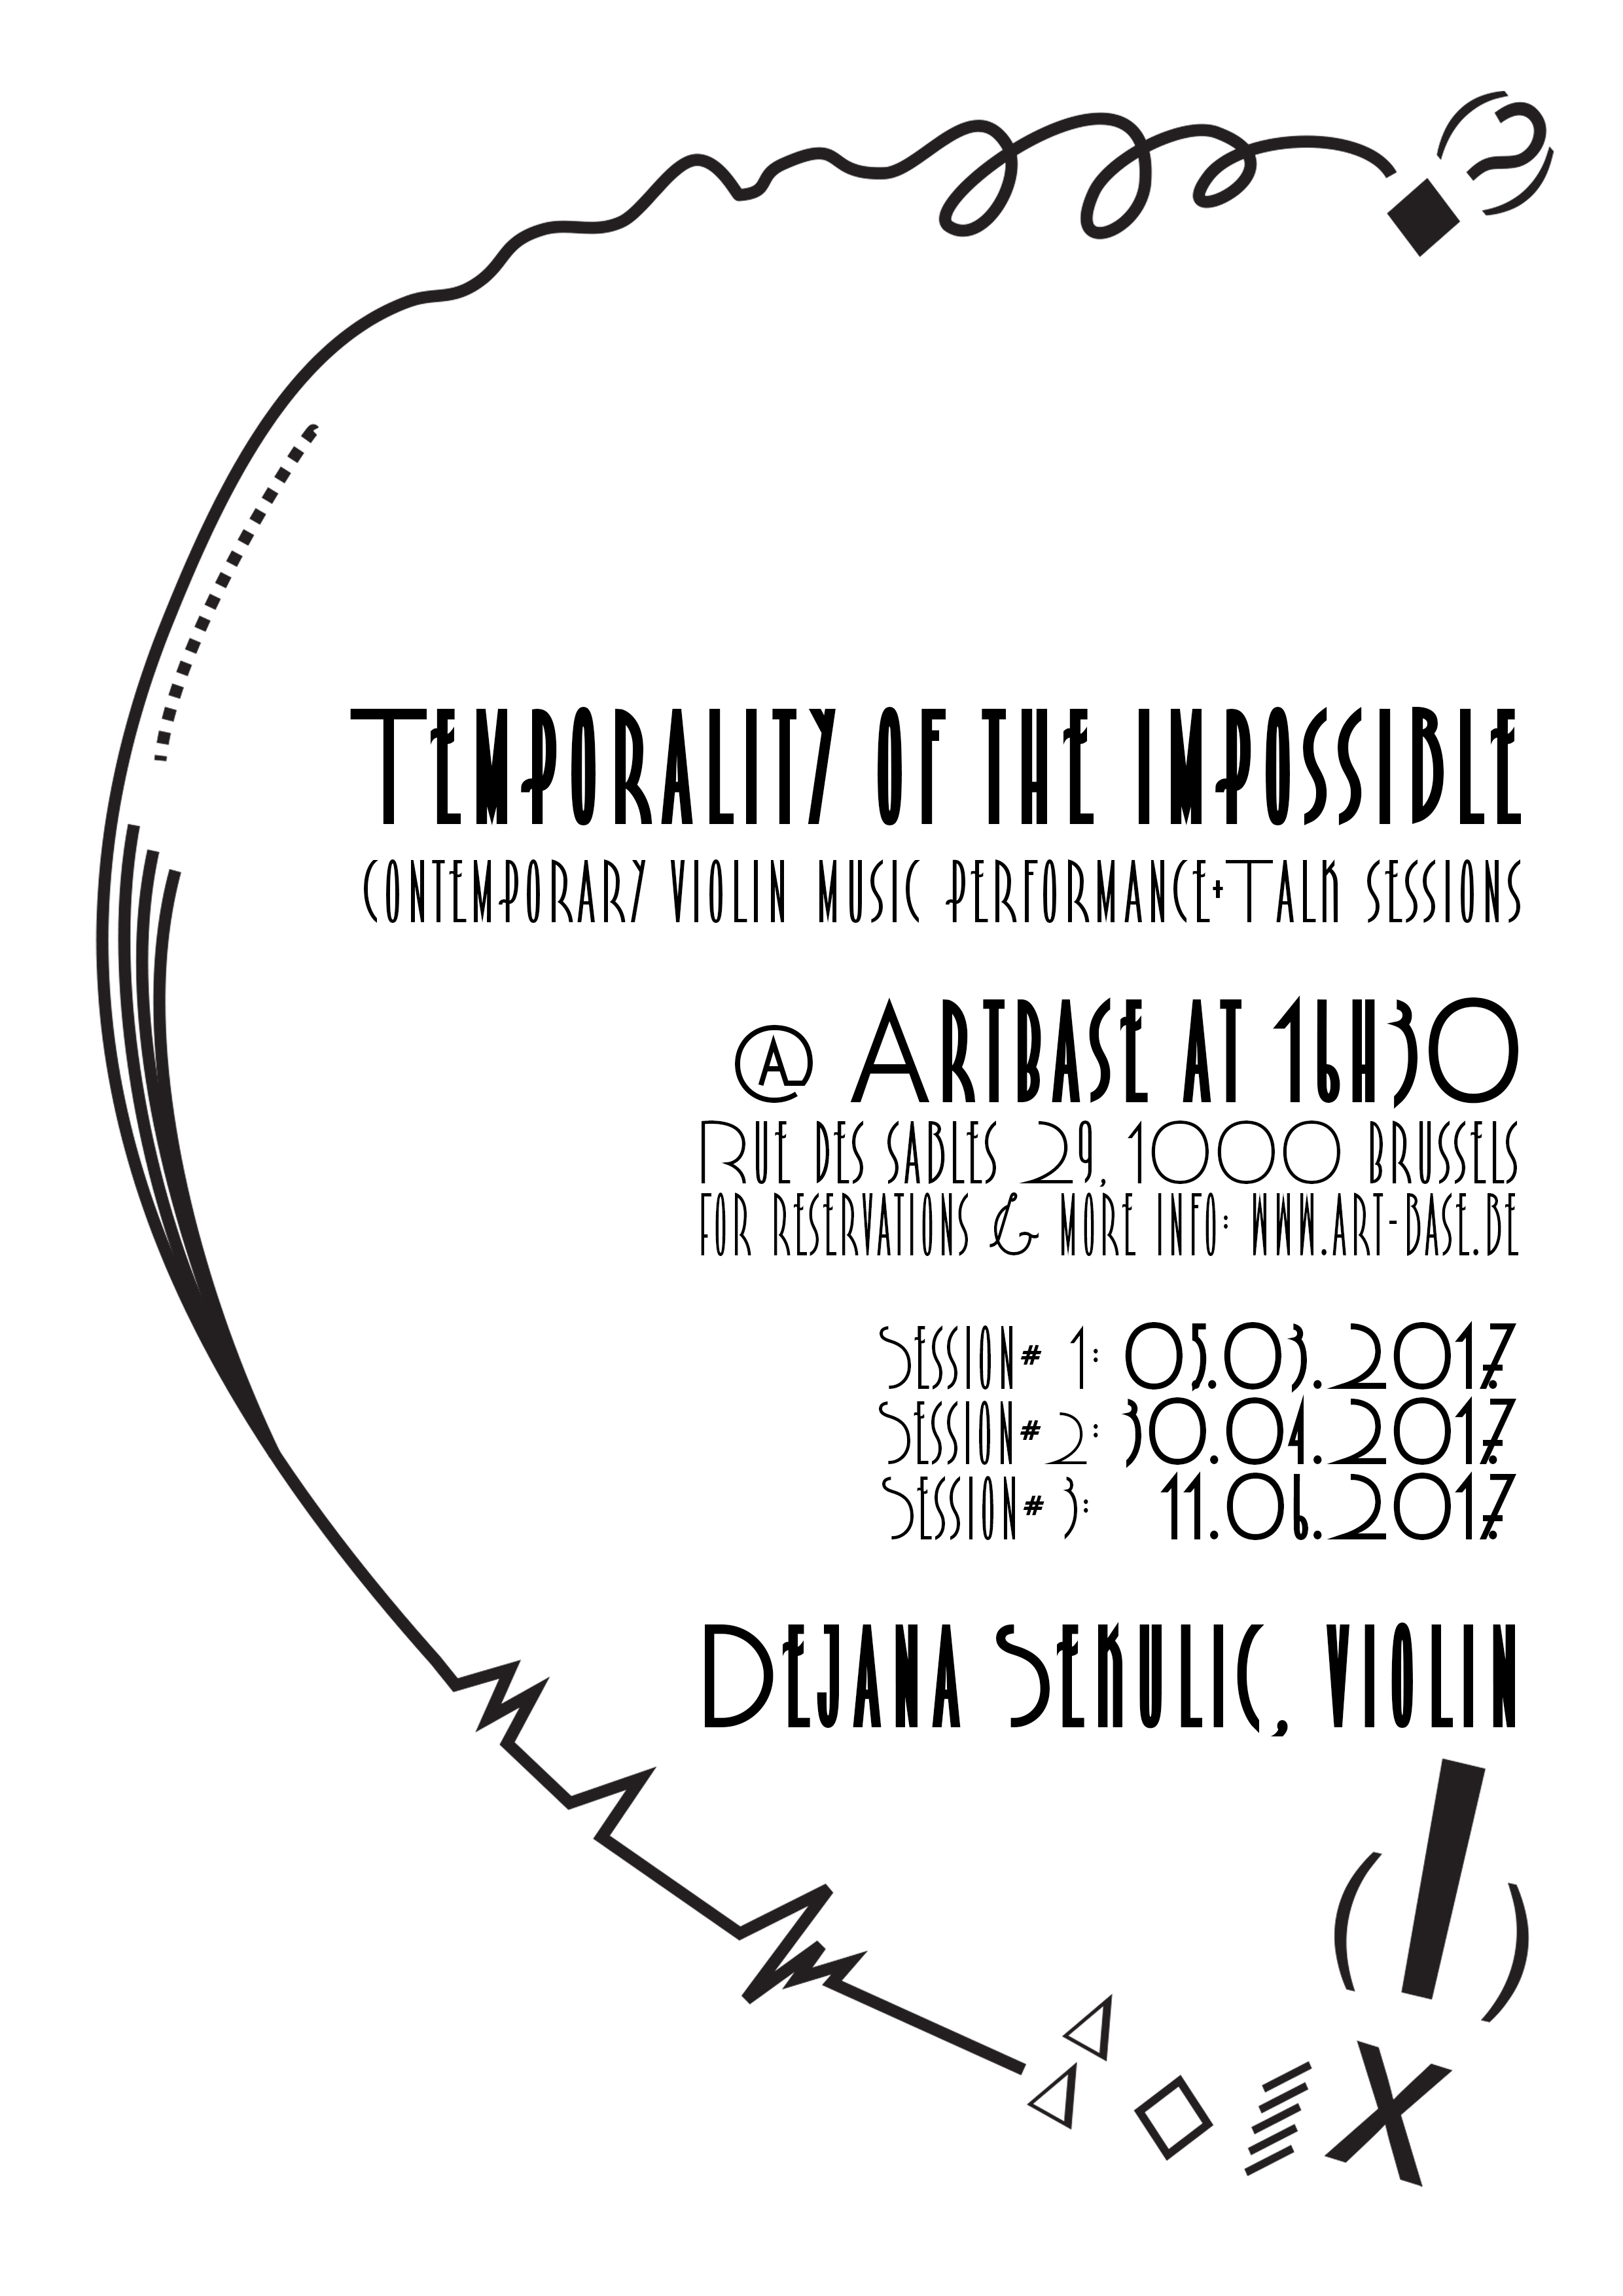 Temporality of the Impossible: Performance+Talk Sessions